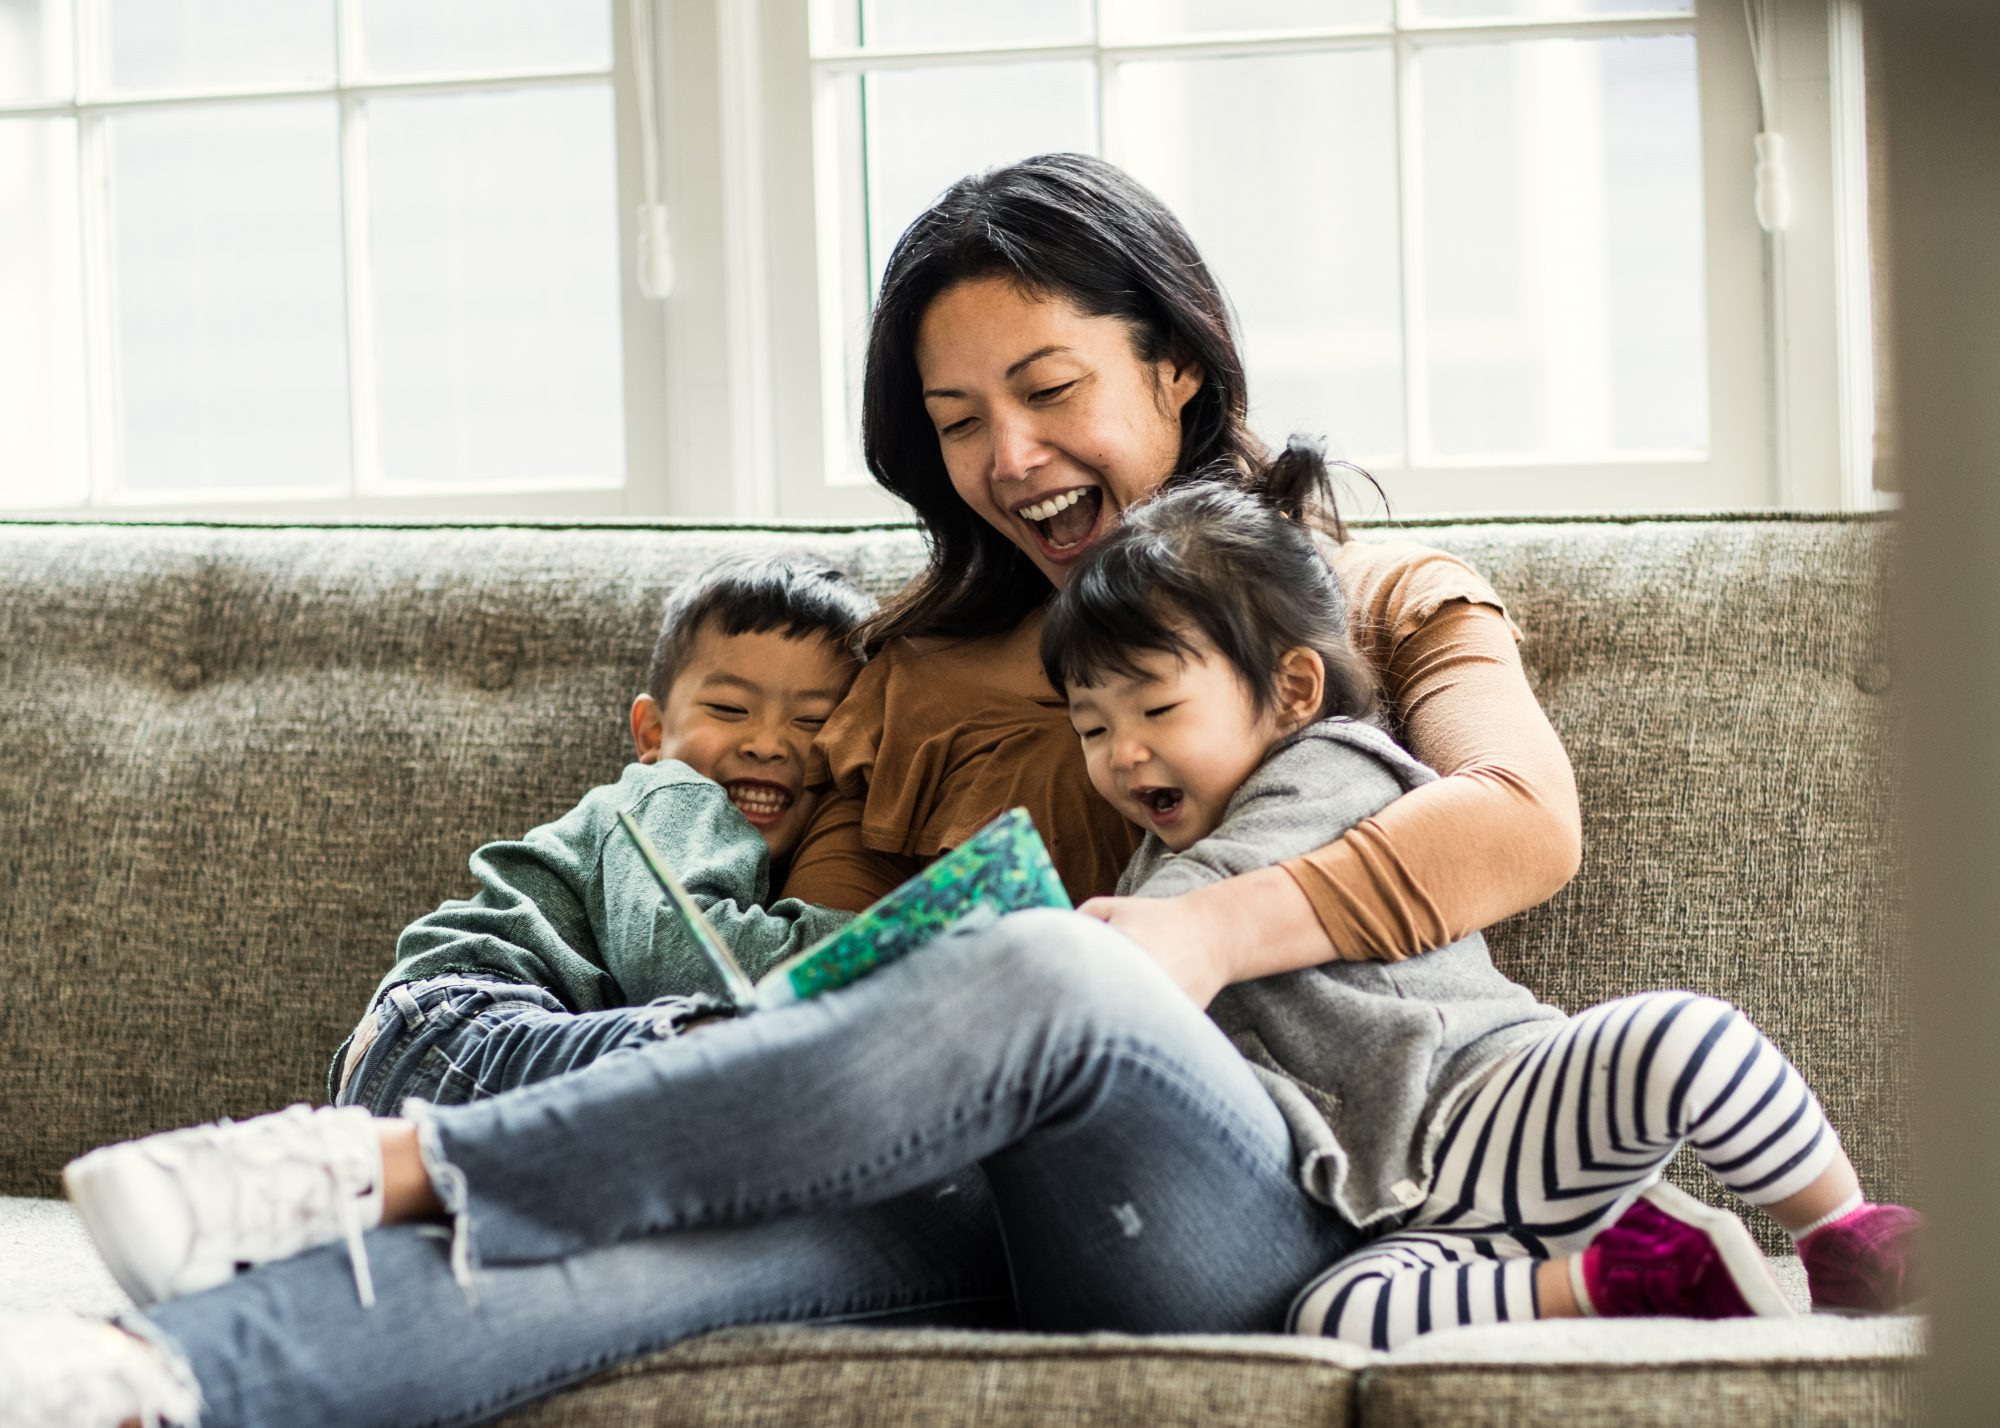 Mother reading to kids on couch